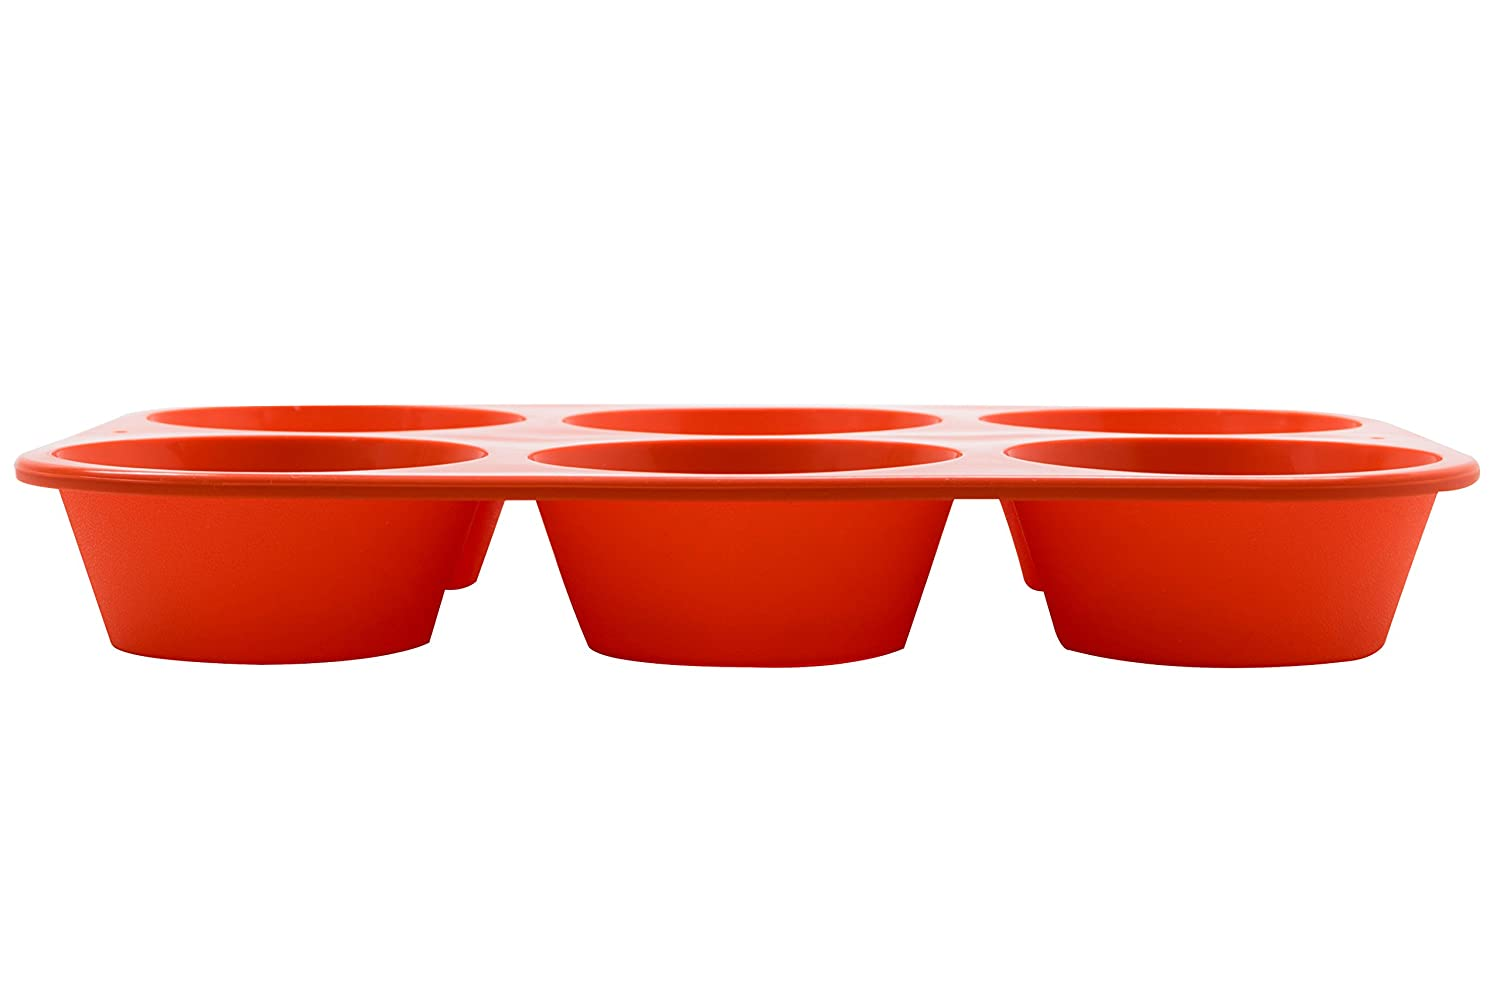 Color-Red SKU-KW200010RD Marathon Premium Silicone 6 Cup Standard Size Muffin Pan